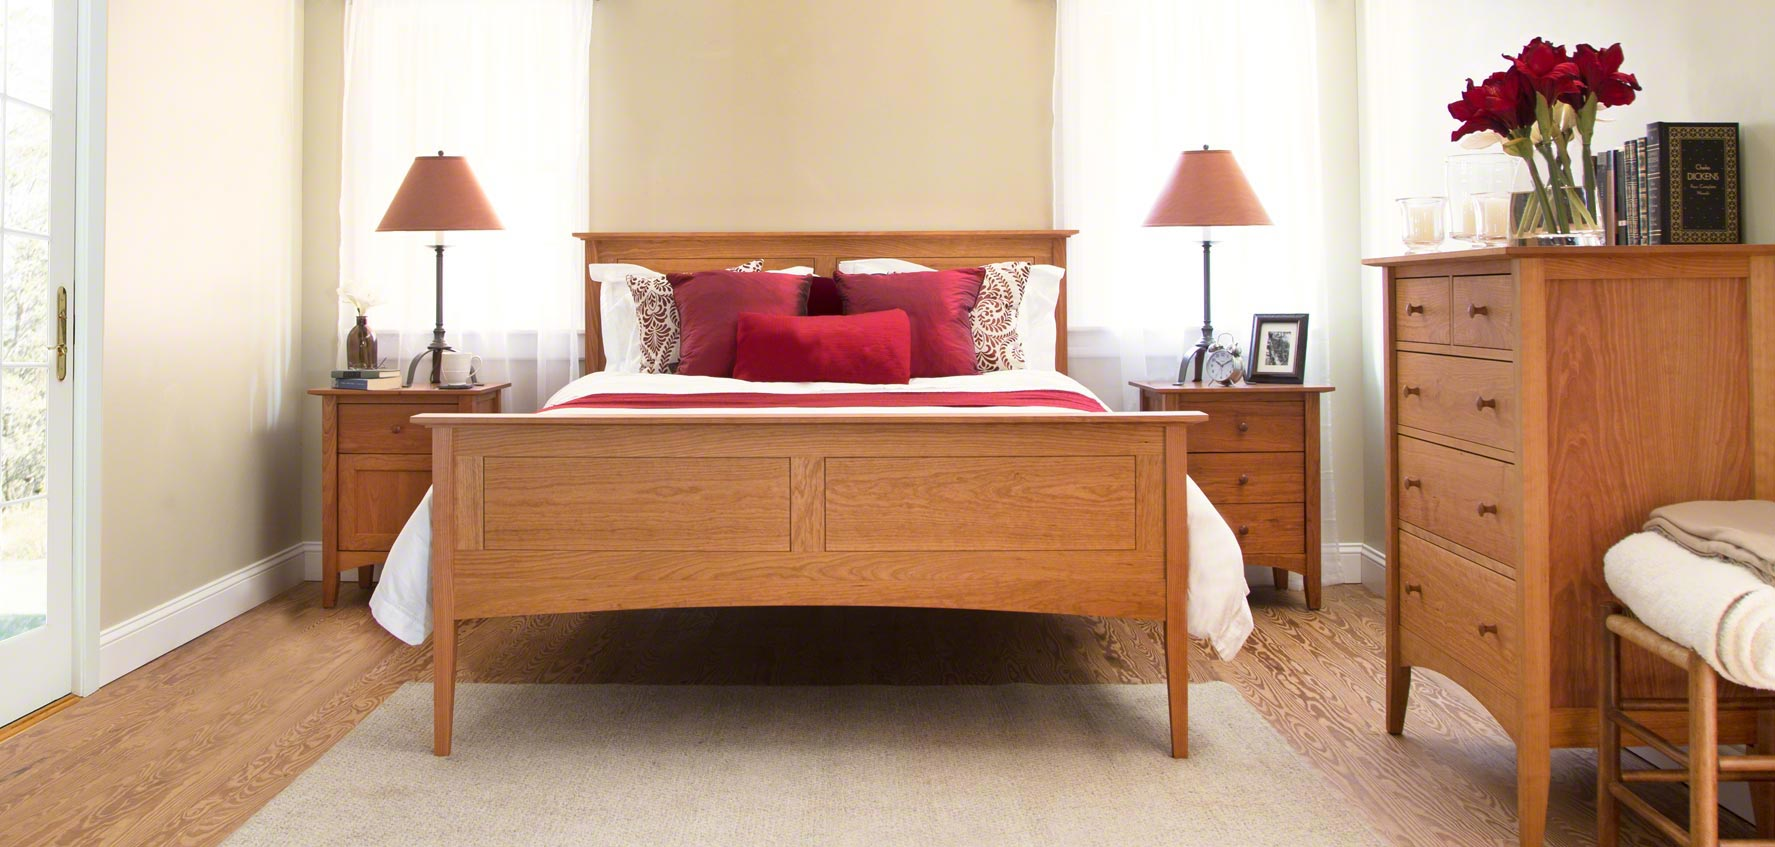 high quality vermont made solid wood beds and wooden bed frames give the best night s sleep our wooden bed frames are handcrafted to order and made in